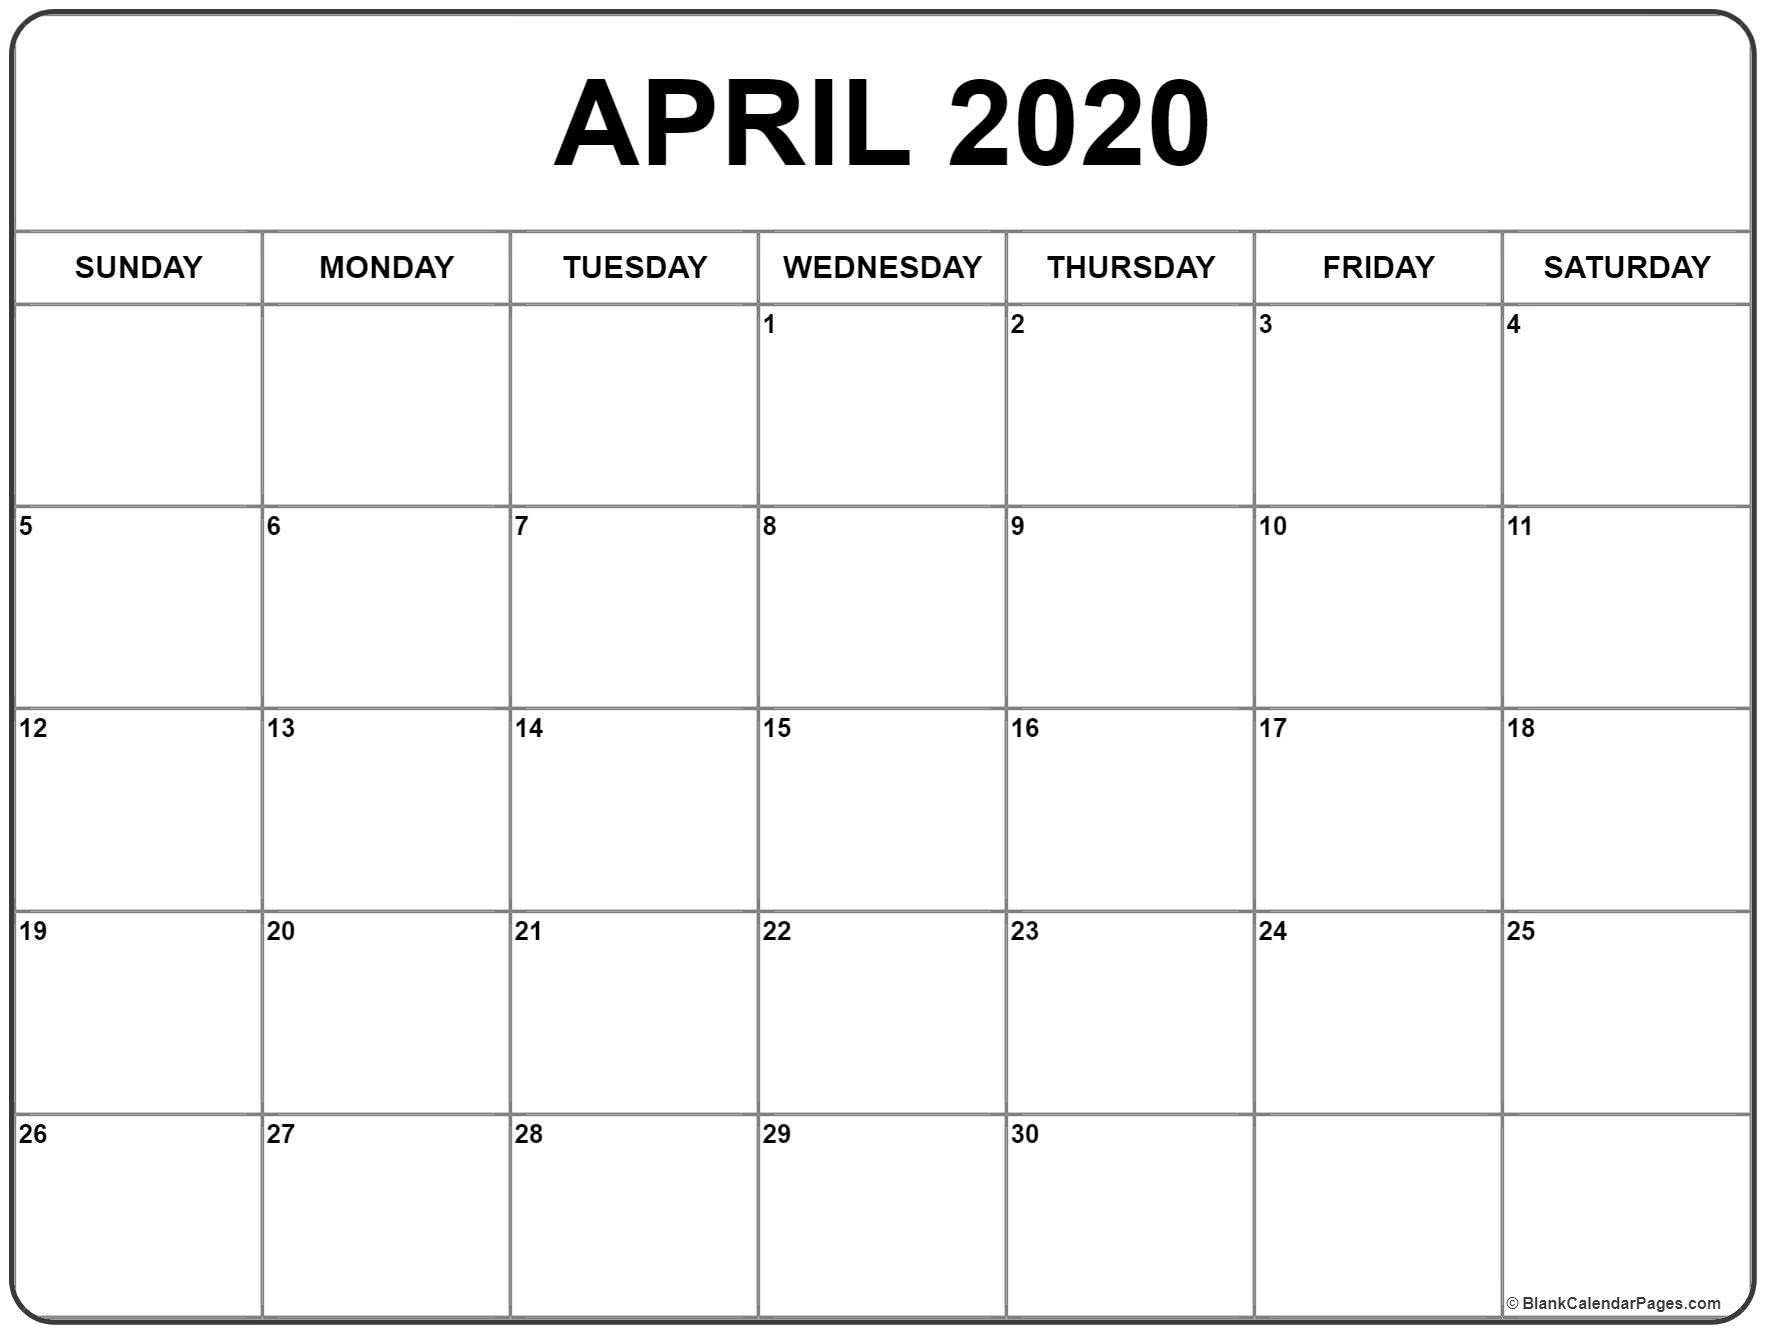 April 2020 Calendar | Free Printable Monthly Calendars